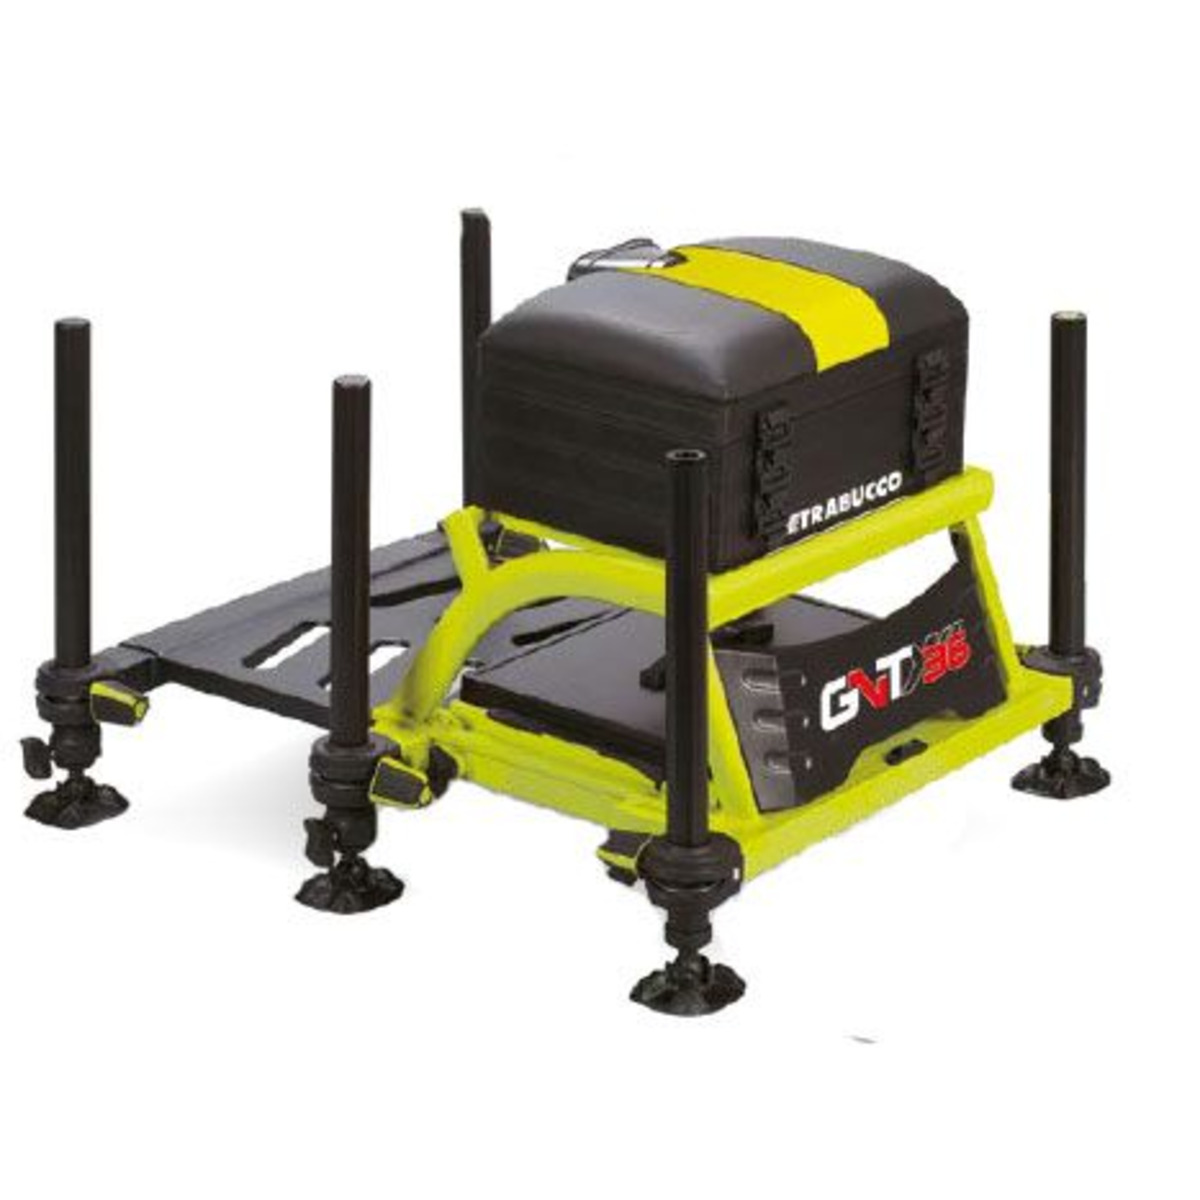 Trabucco Seatbox Gnt-X36 Station - Lime